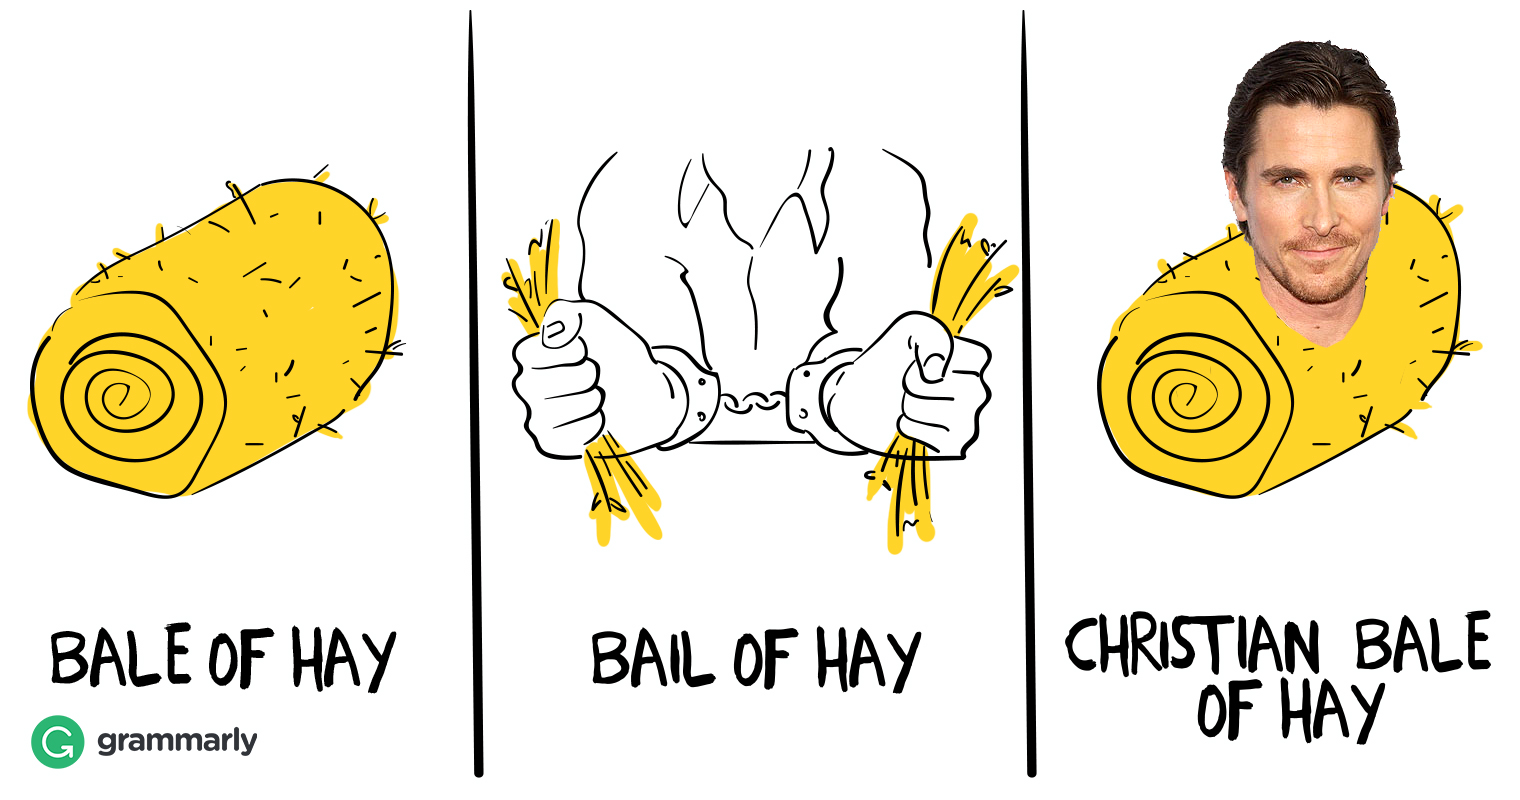 bale of hay or